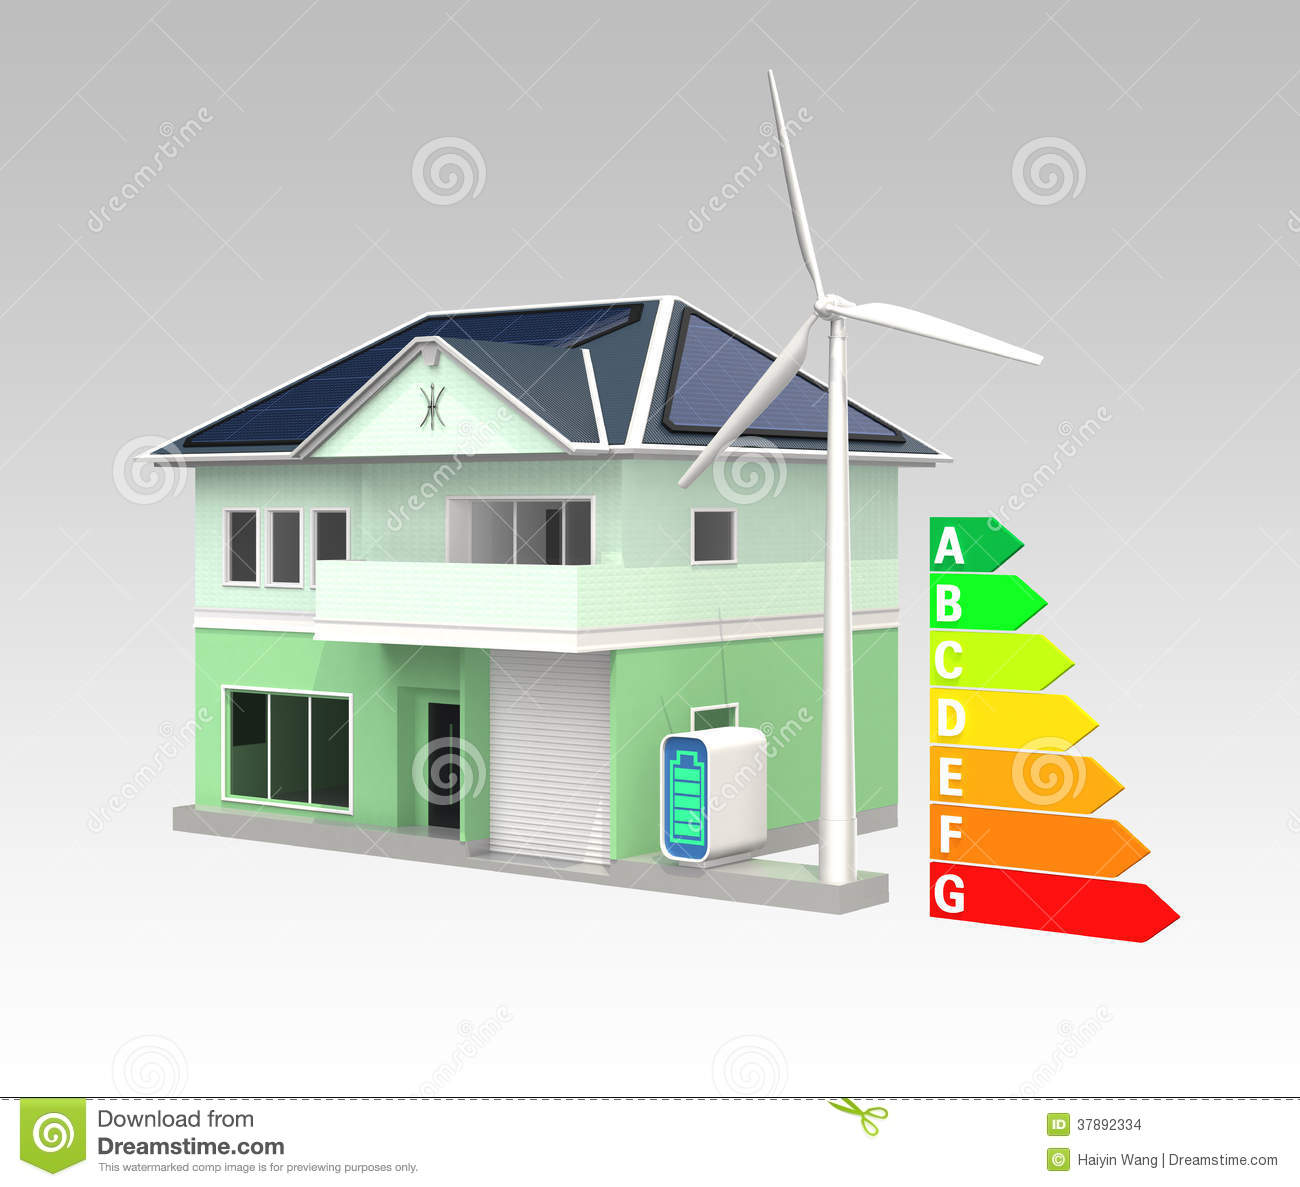 Smart house with solar panel system energy efficient chart for Efficient heating systems small houses